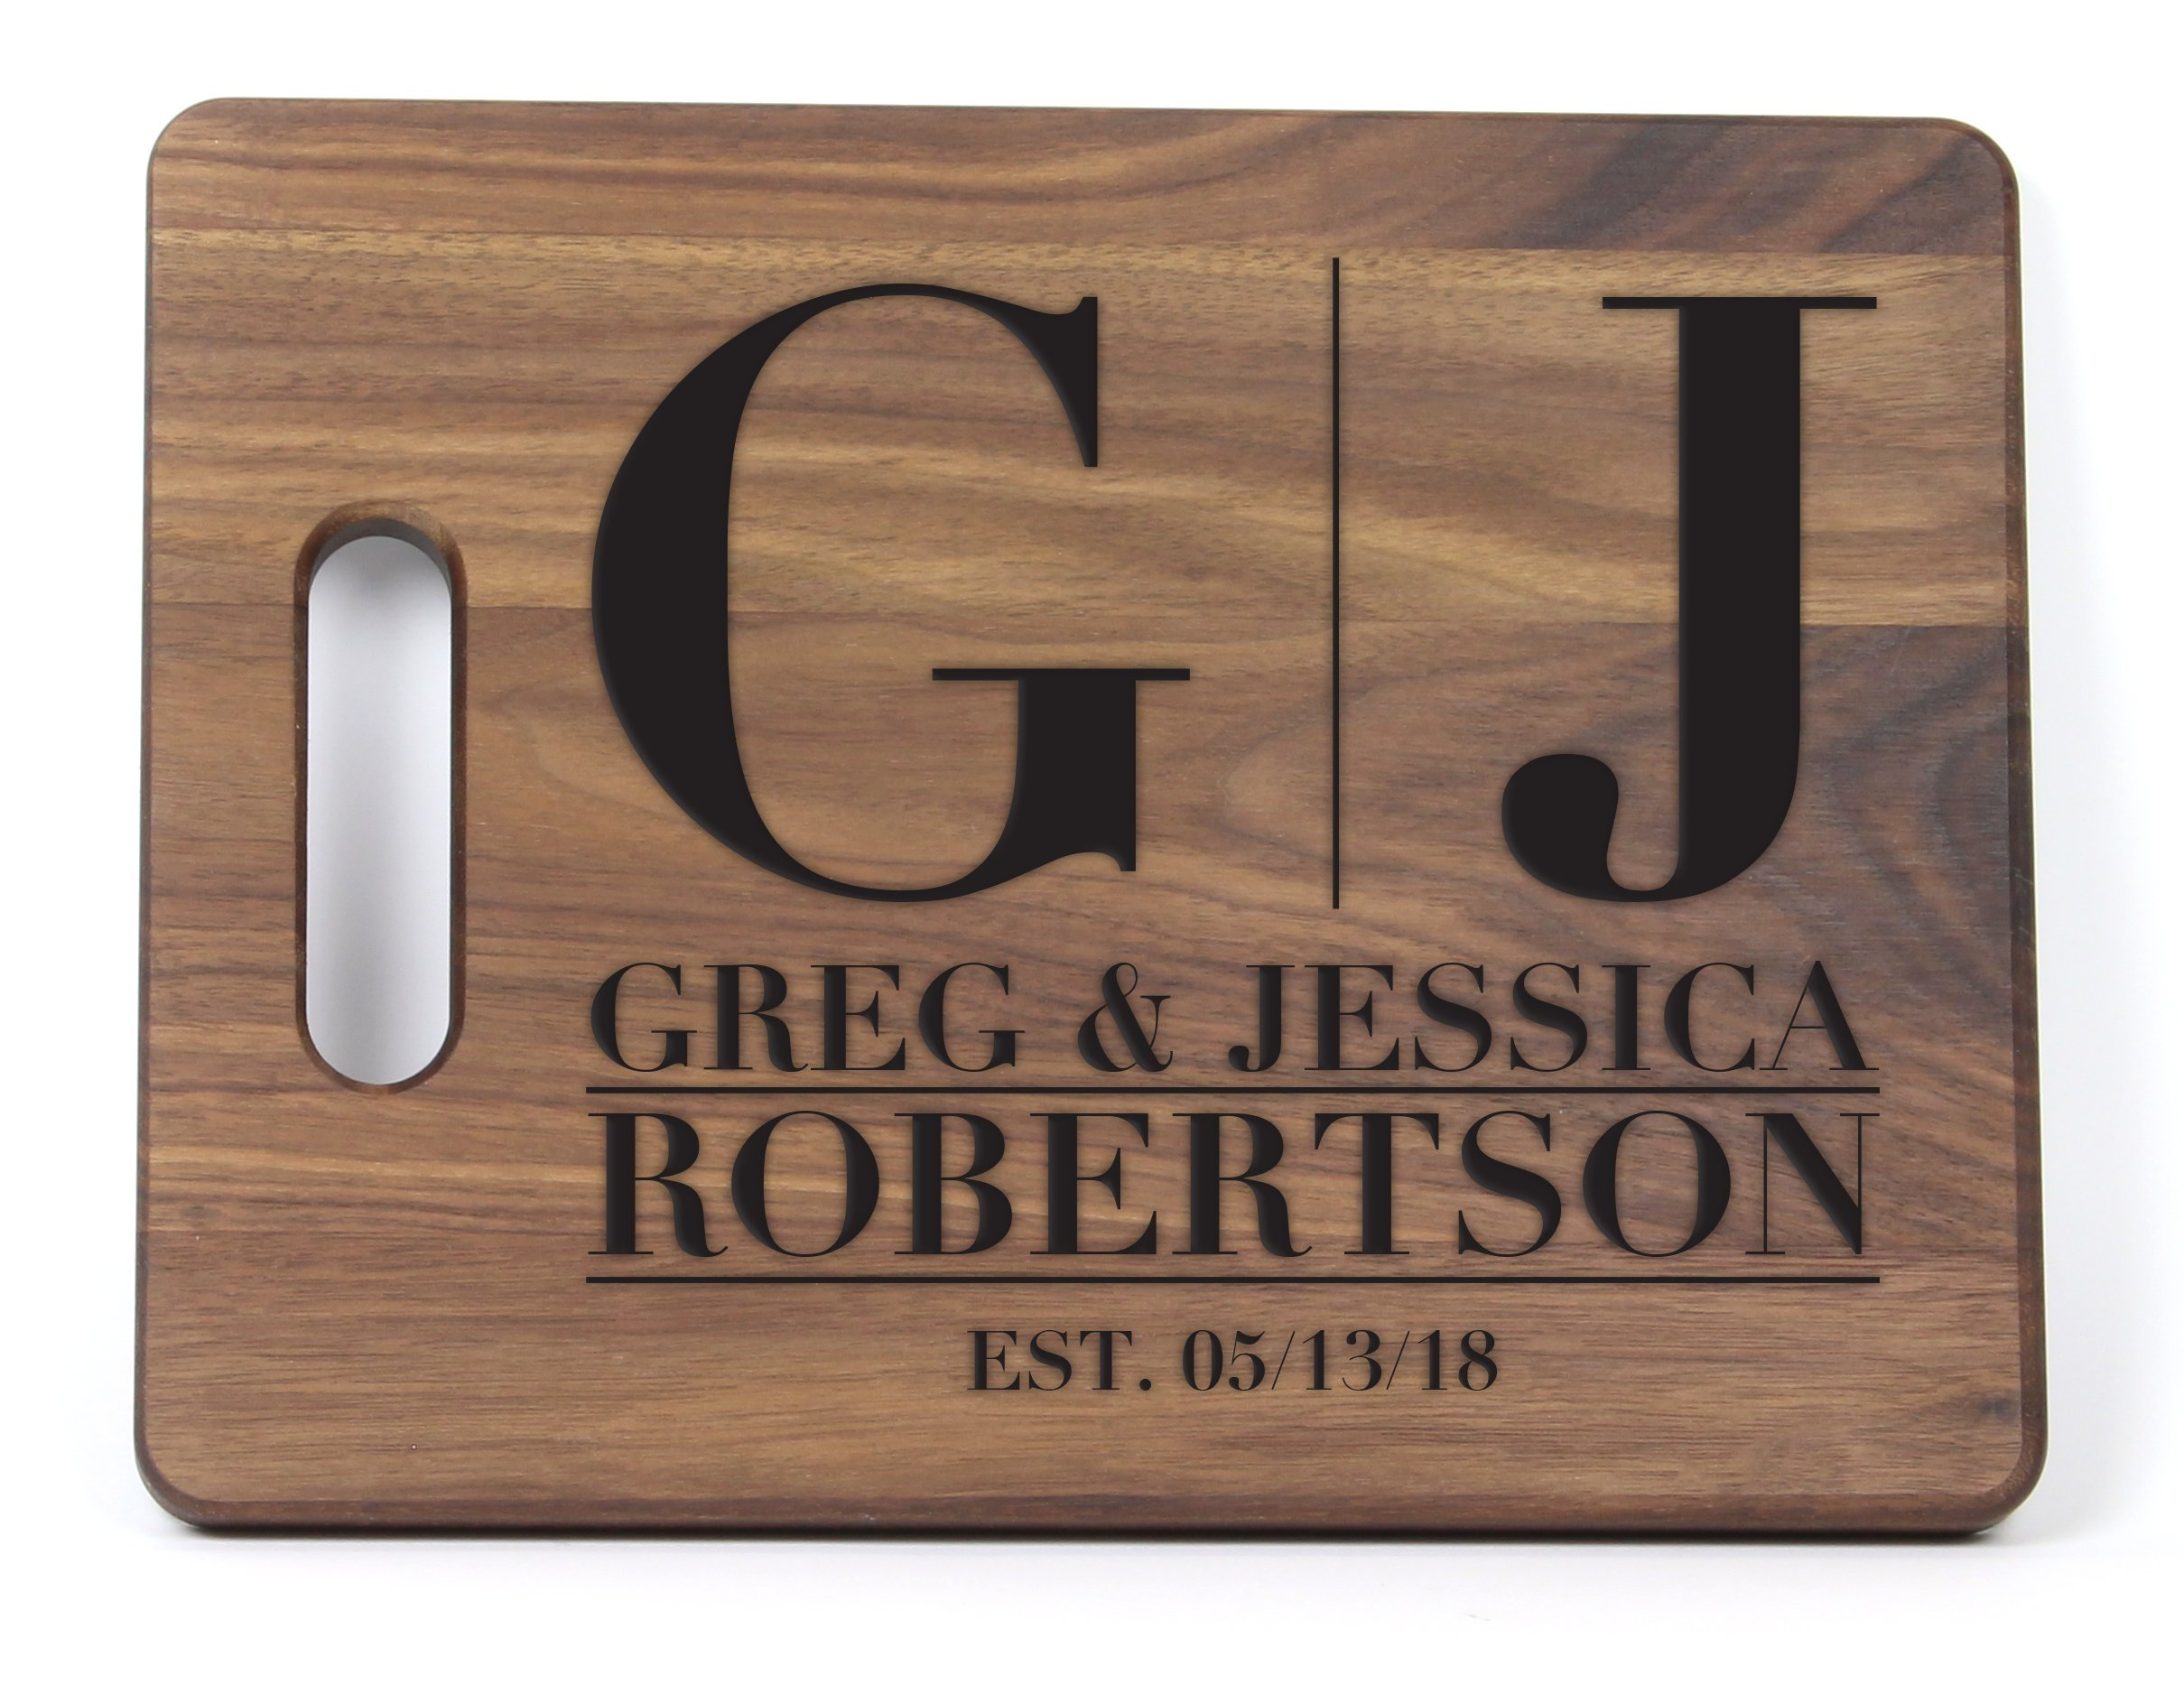 personalized cutting board choose your wood newlyweds christmas gift bridal shower wedding anniversary gift engraved fast shipping